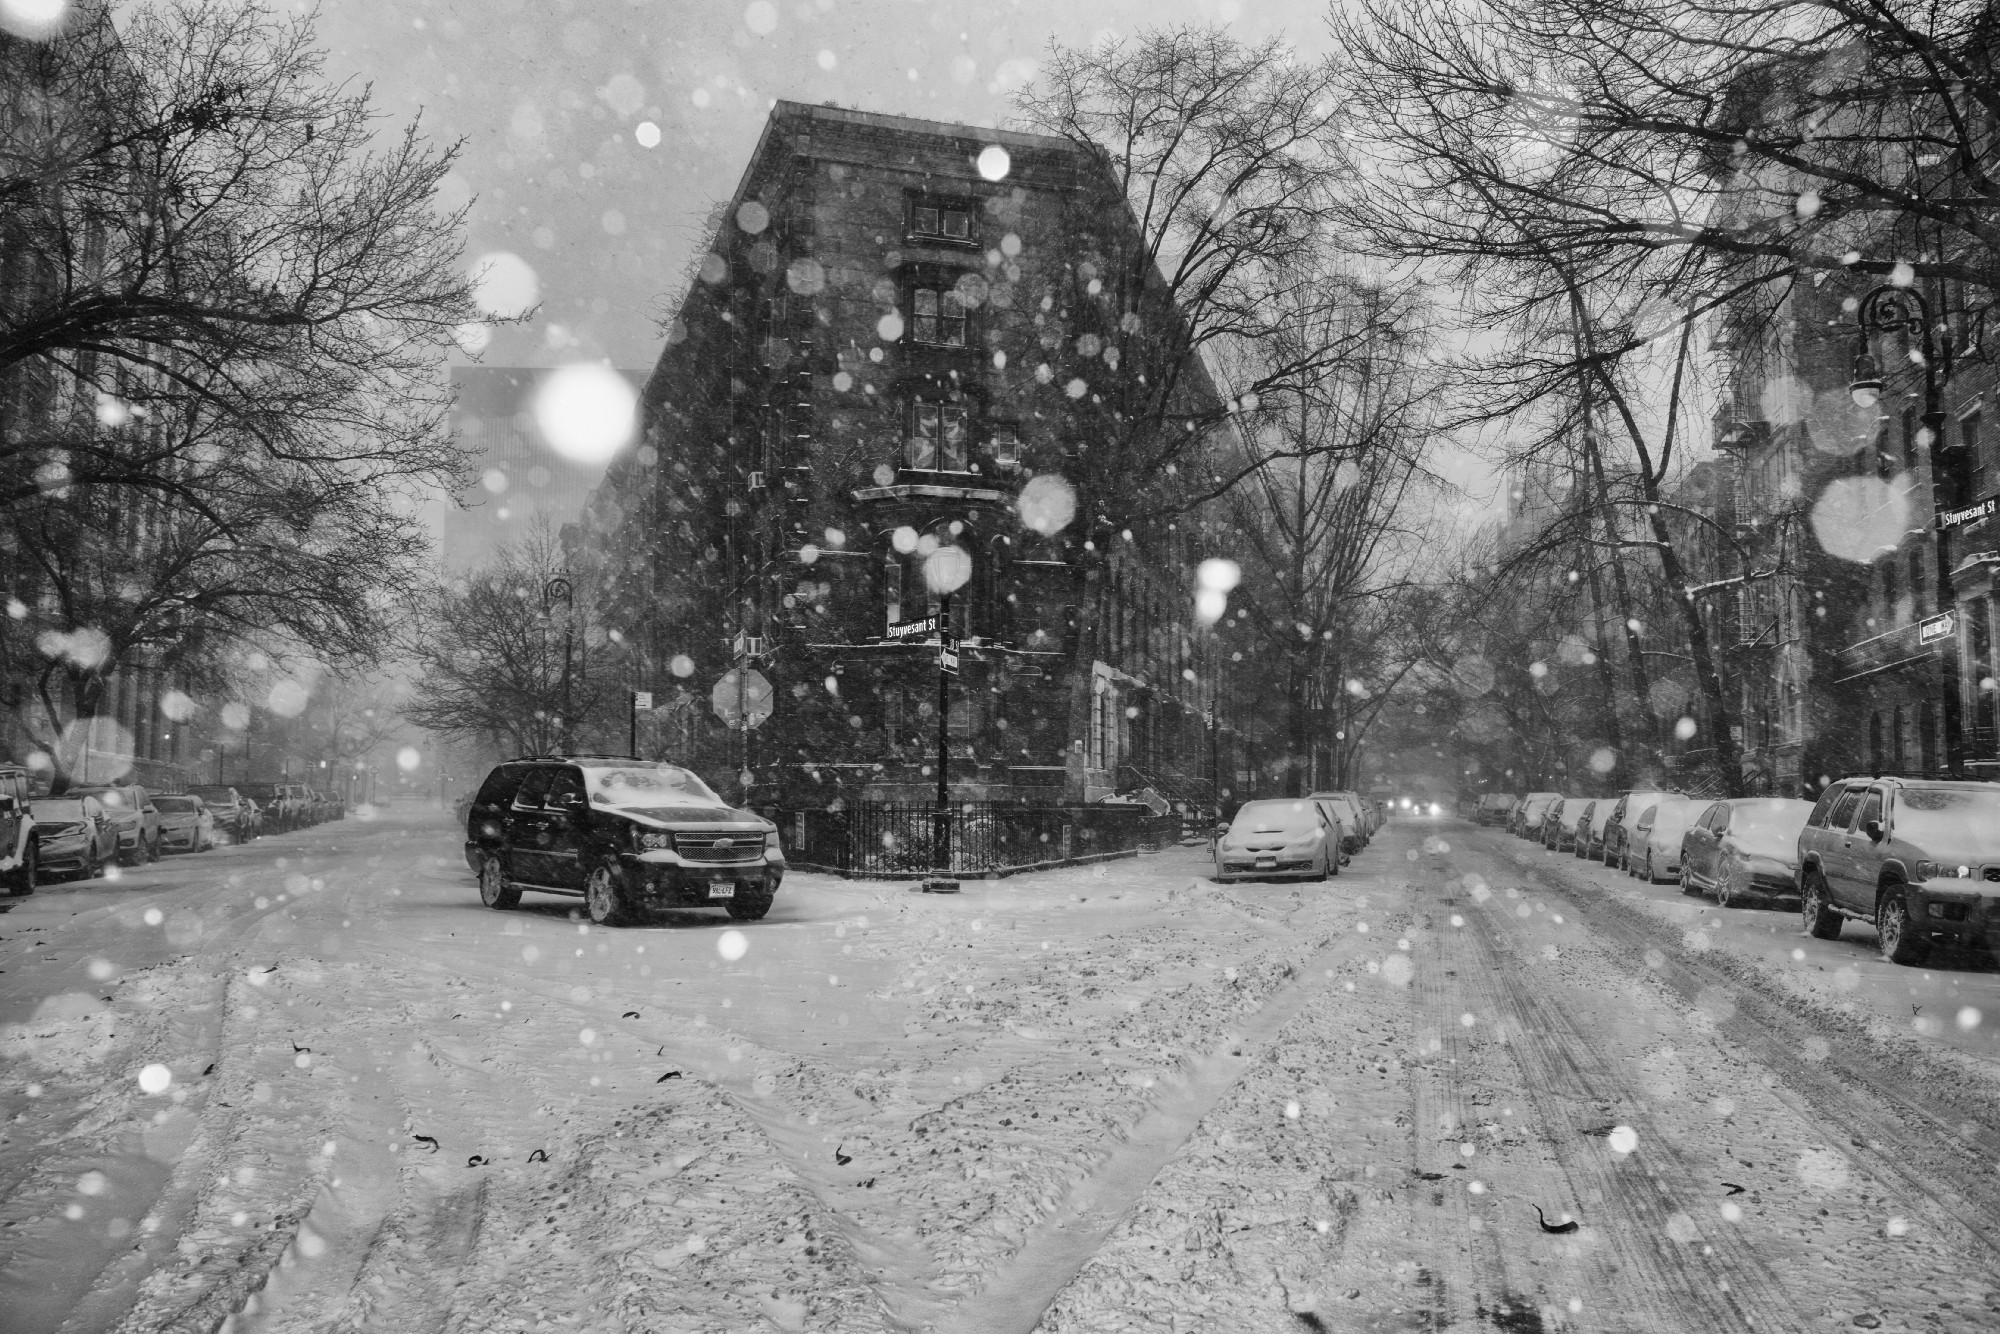 Intersection of city streets during heavy snowfall. Tall buildings and trees, cars parked, one car driving, cinders on street